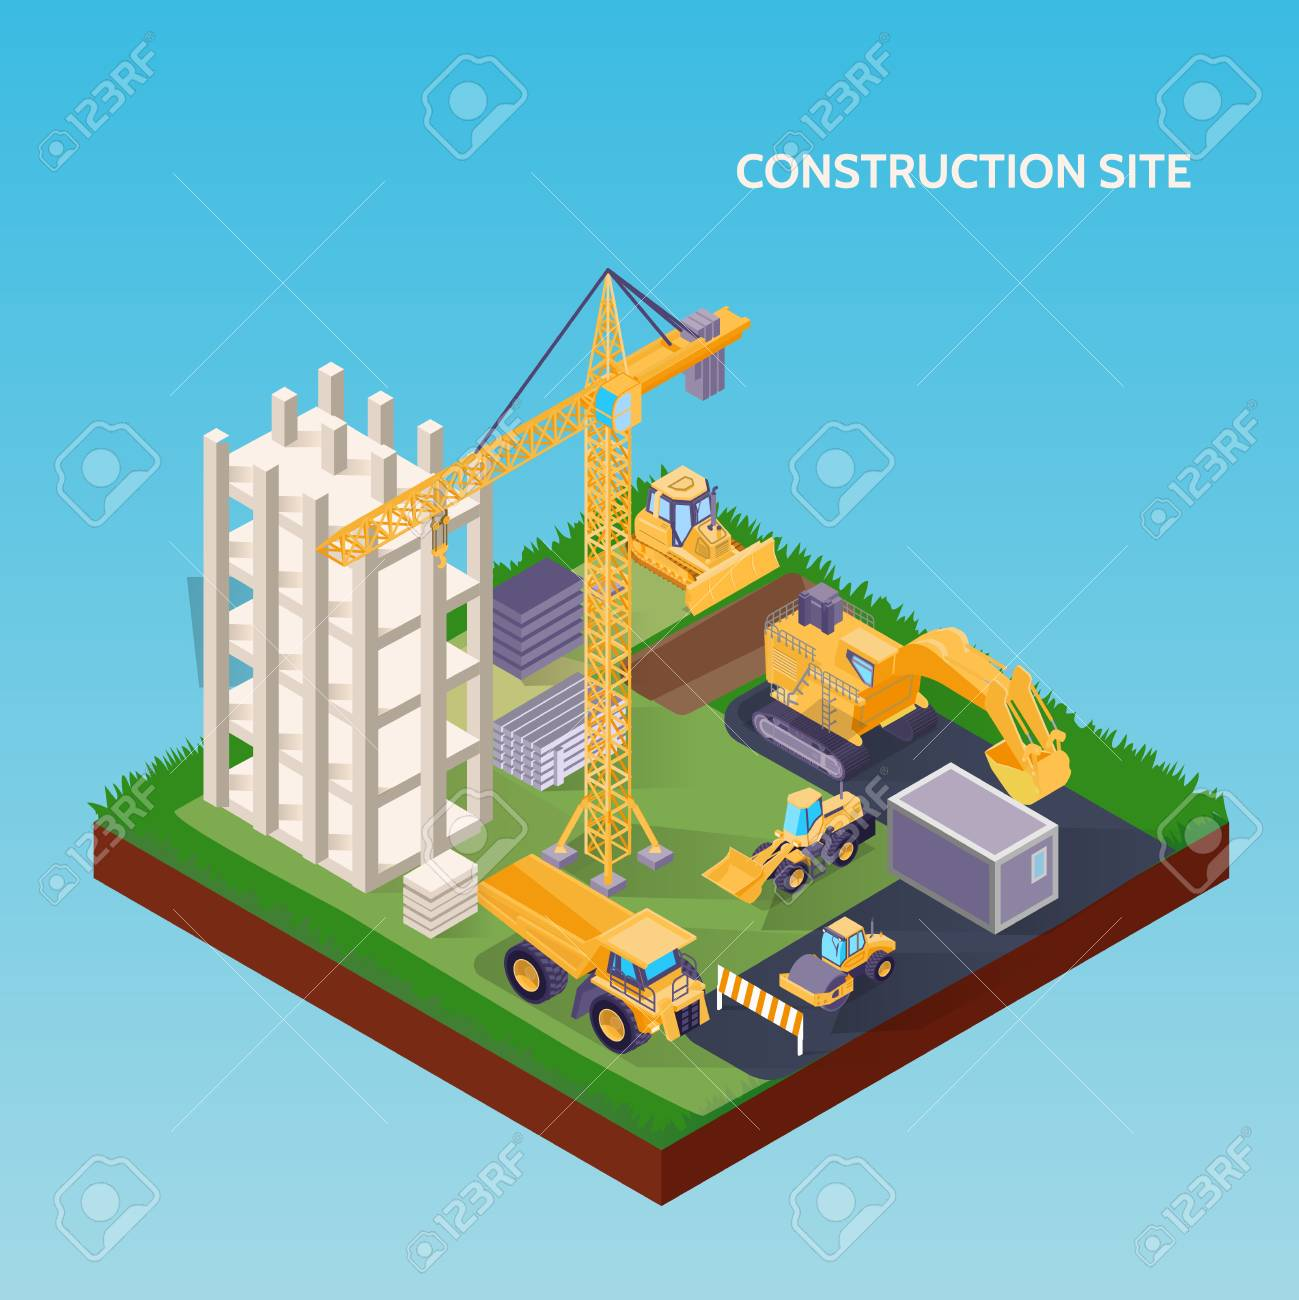 Construction site isometric concept with house foundation crane excavator bulldozer and materials on blue background 3d vector illustration - 106993590